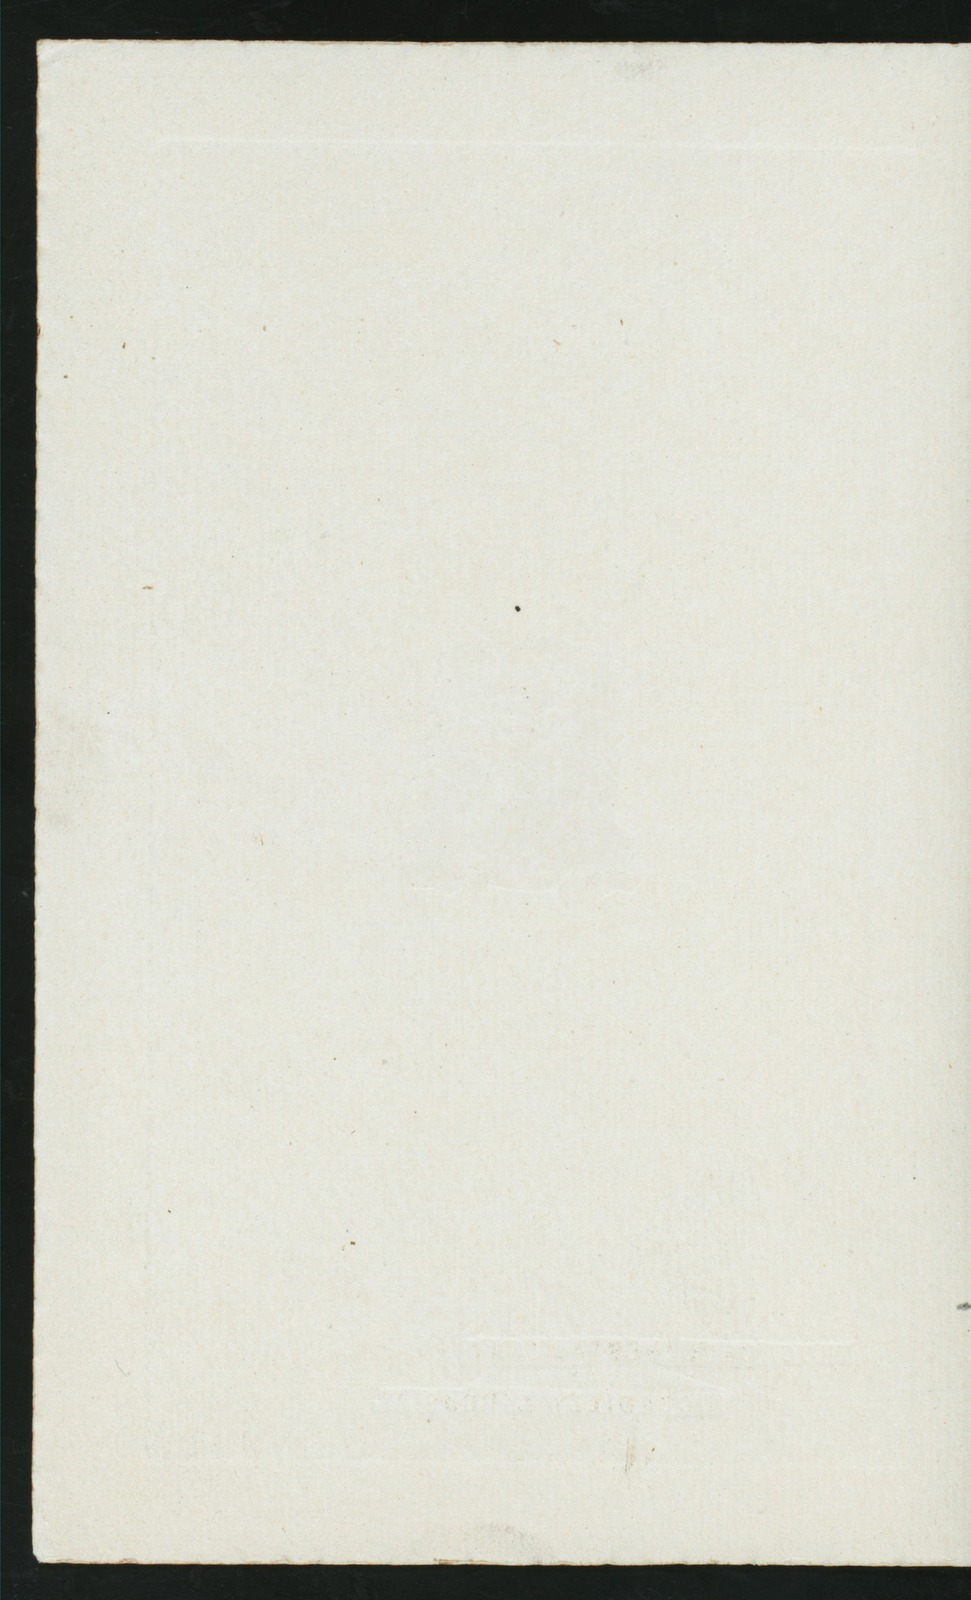 """BANQUET [held by] ROYAL BOROUGH OF KENSINGTON [at] """"EMPIRE ROOMS, TROCADERO RESTAURANT, PICCADILLY CIRCUS, W. [LONDON, ENGLAND]"""" (FOR;)"""